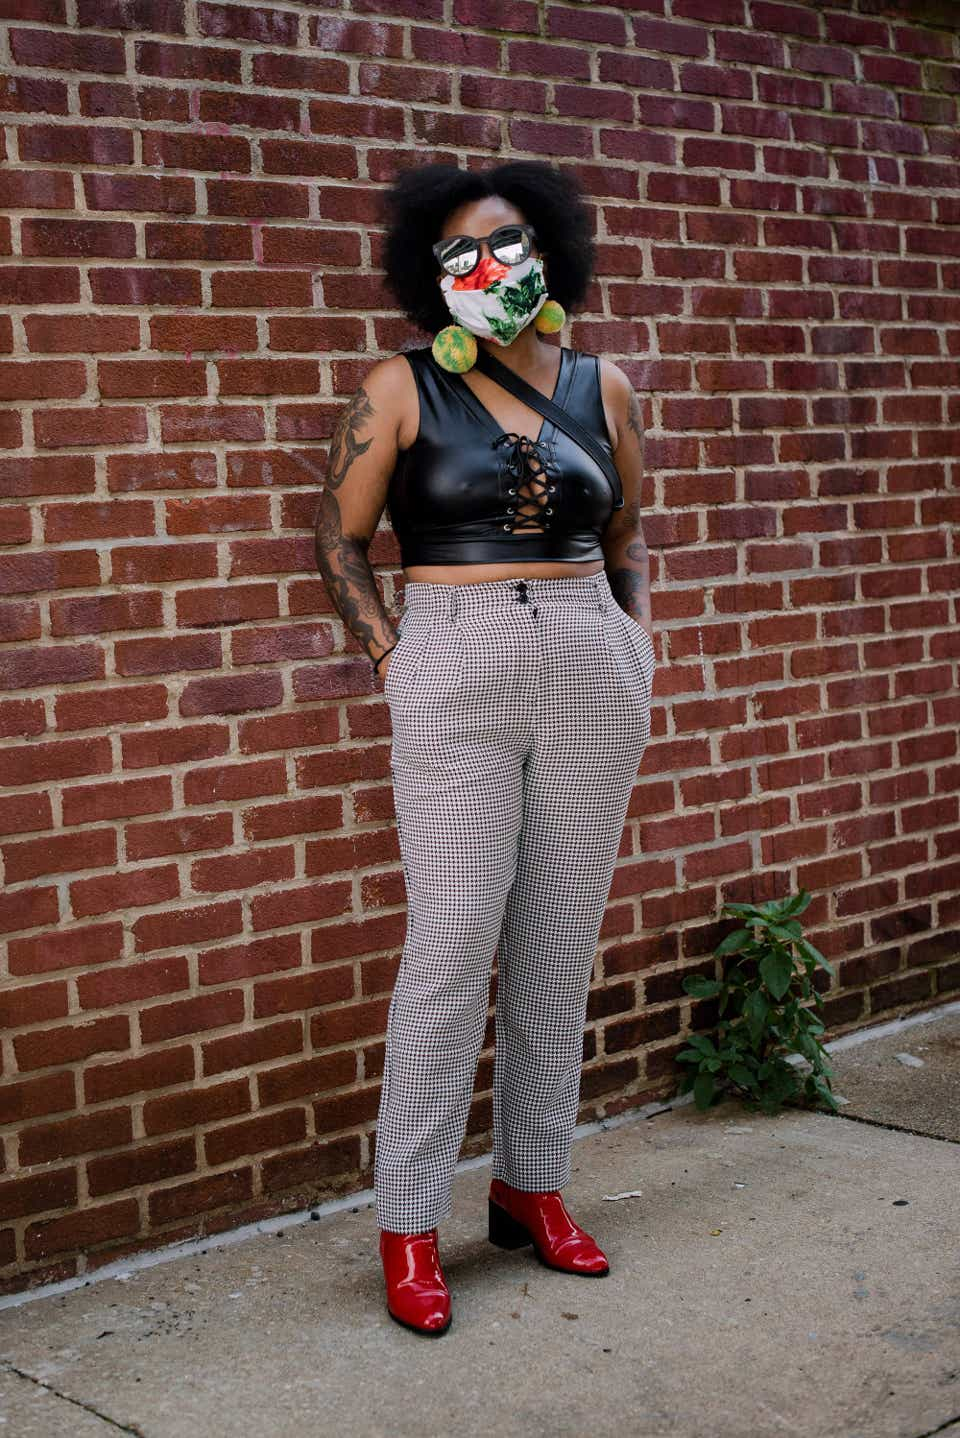 Adesola is wearing a face mask with leaves printed on it and oversized green-and-yellow earrings. She also has on a leather crop top with gray, plaid trousers and red boots.